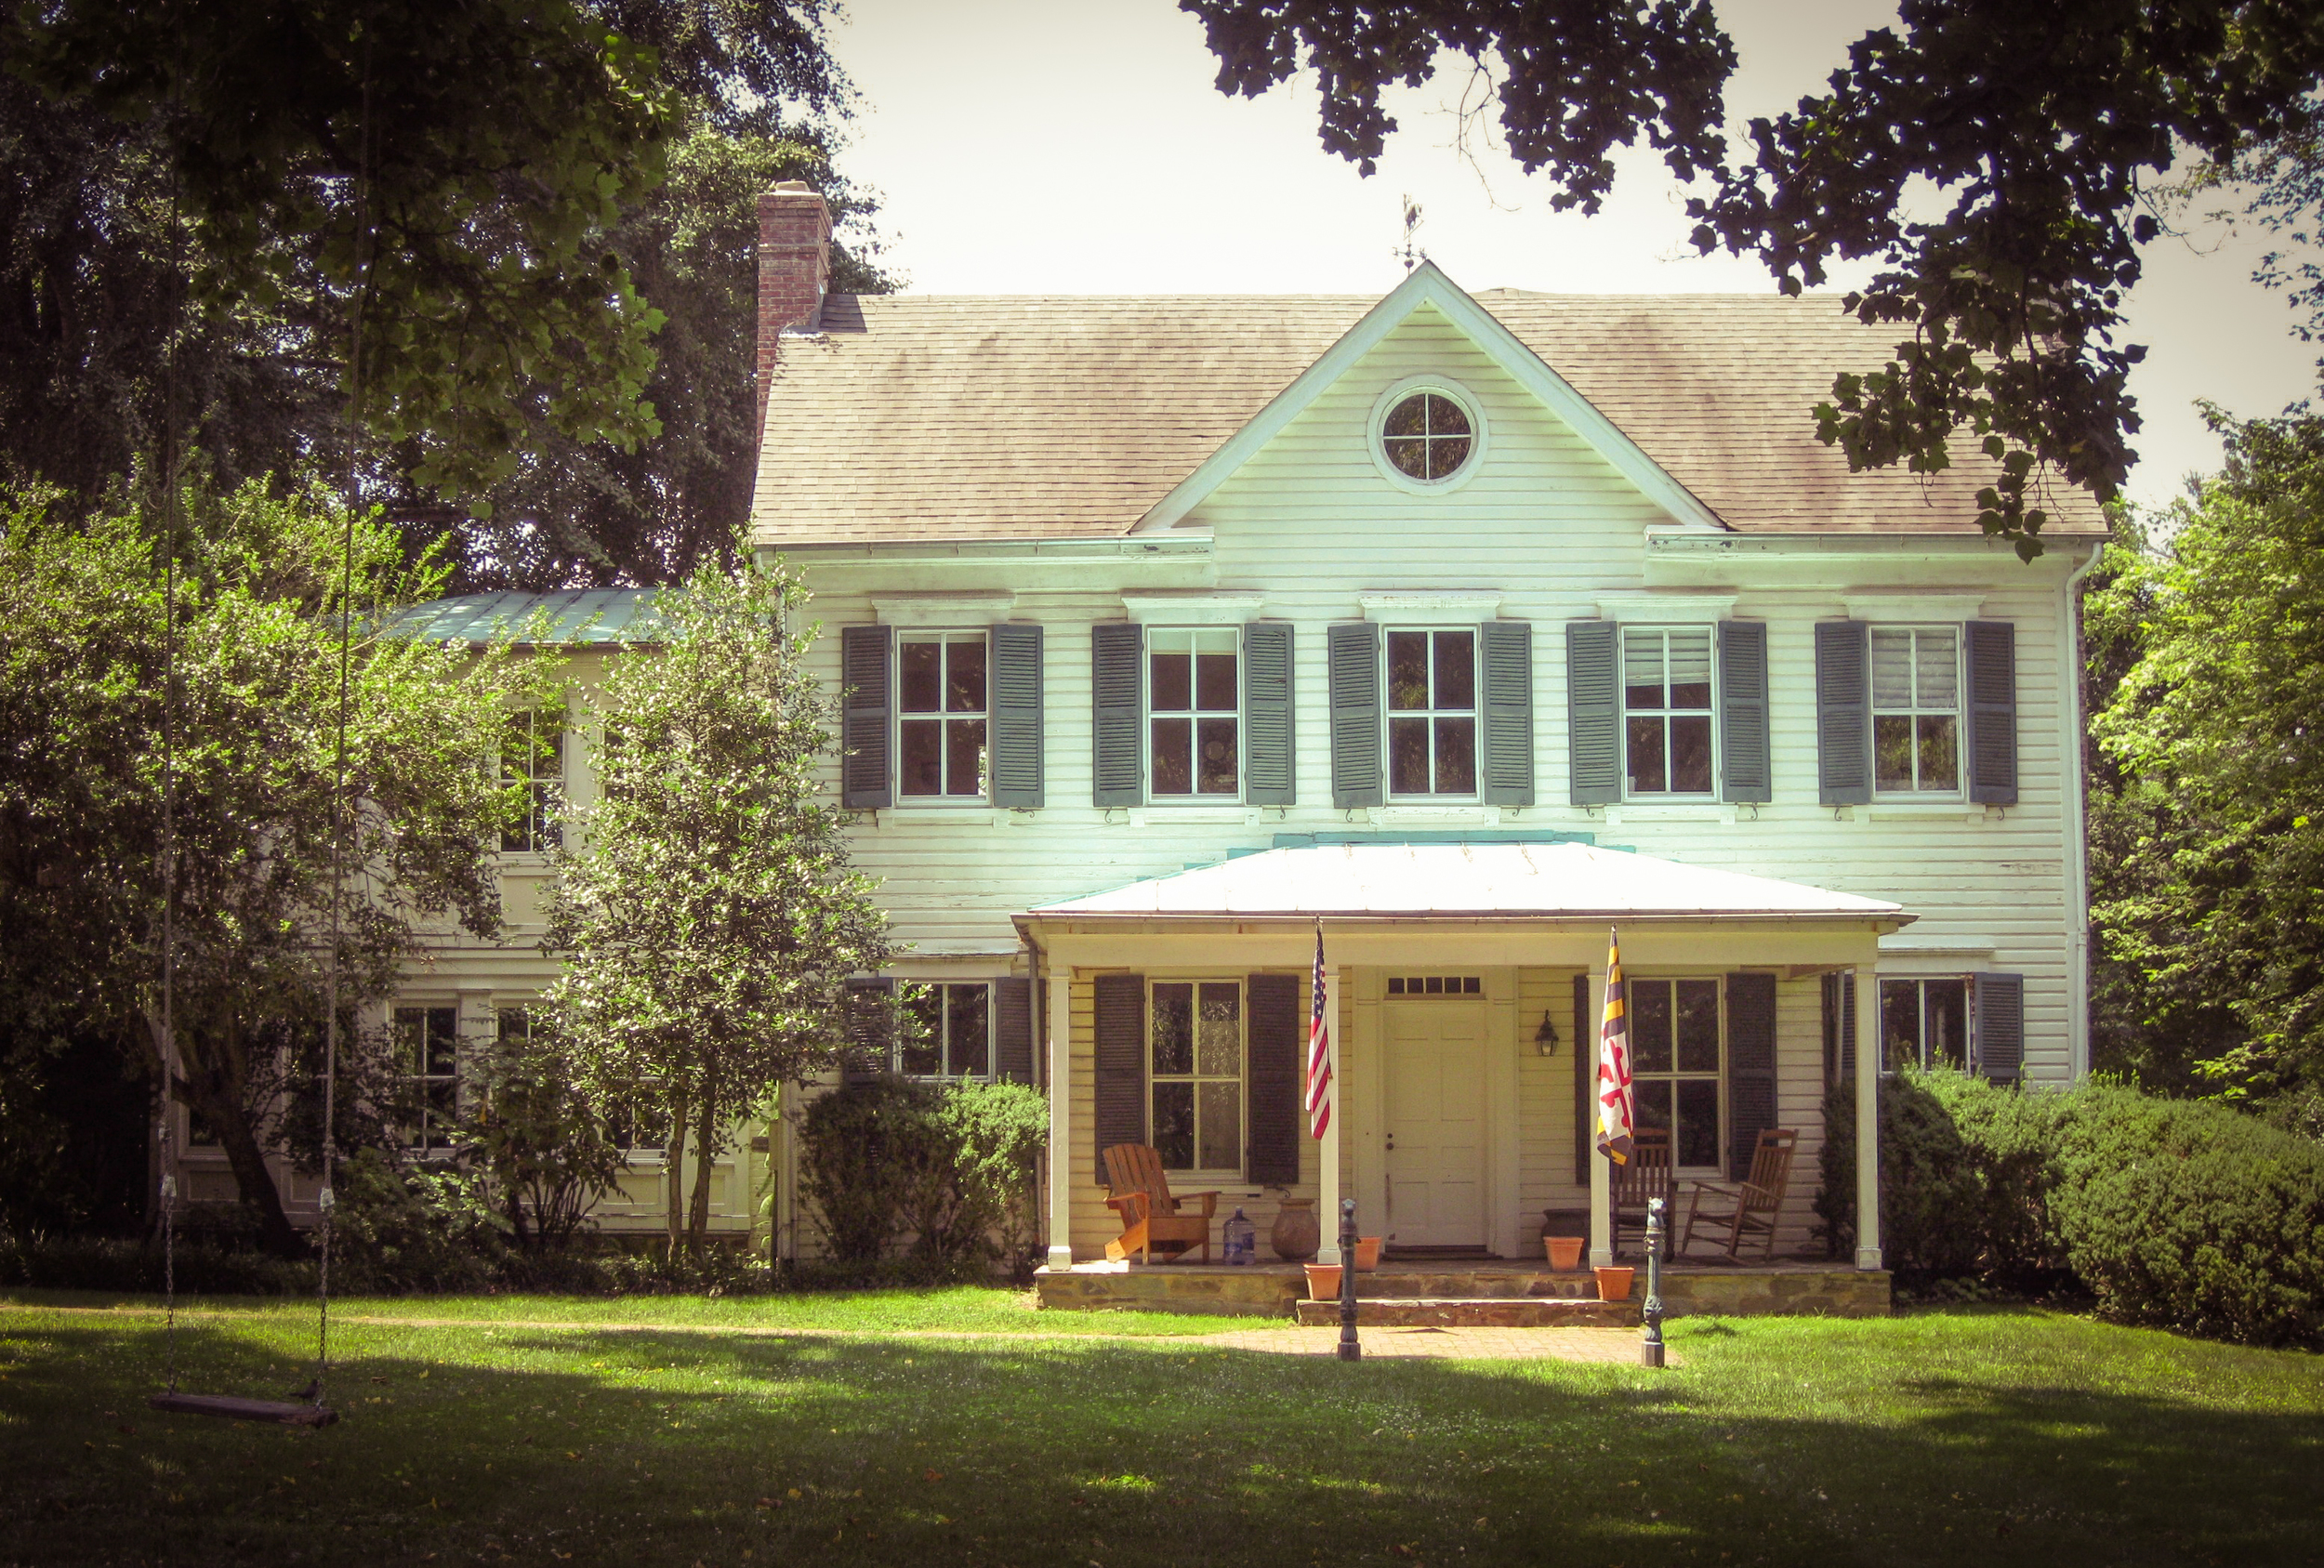 The Conways' house in Potomac, Maryland stars in  Philomena  as Peter Olsson's house - image via  Google .